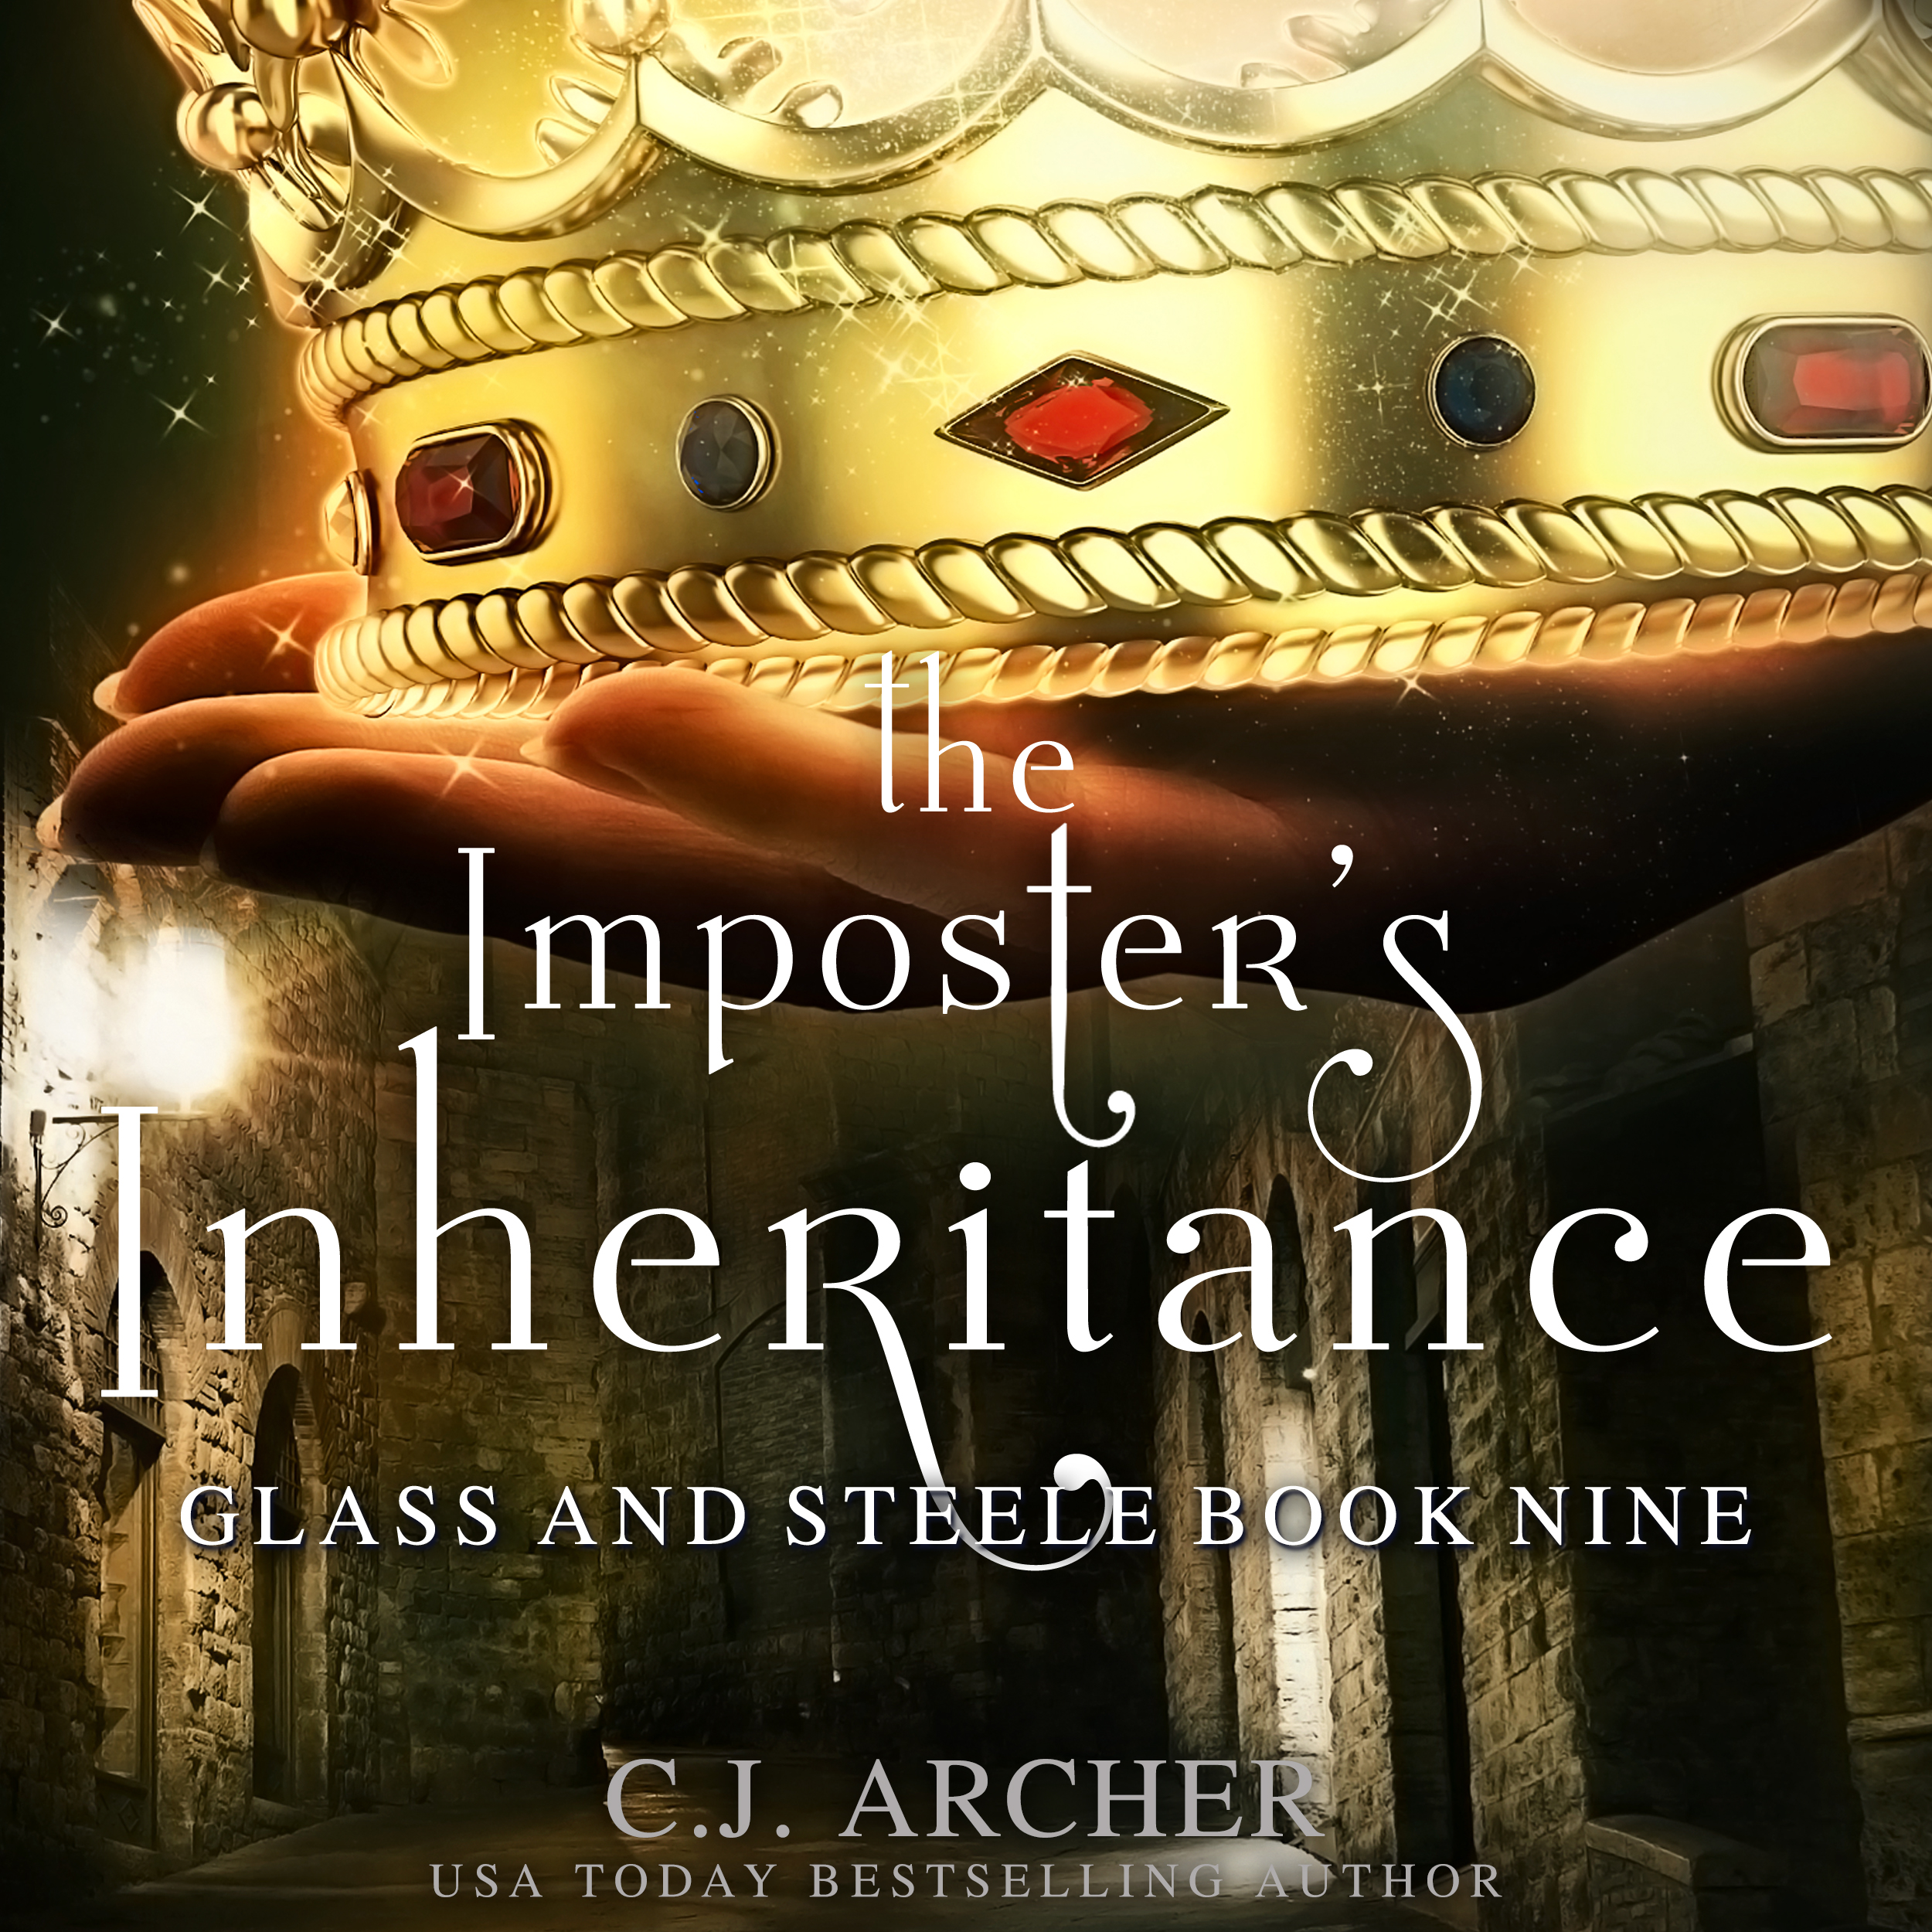 The Imposter's Inheritance audiobook by CJ Archer